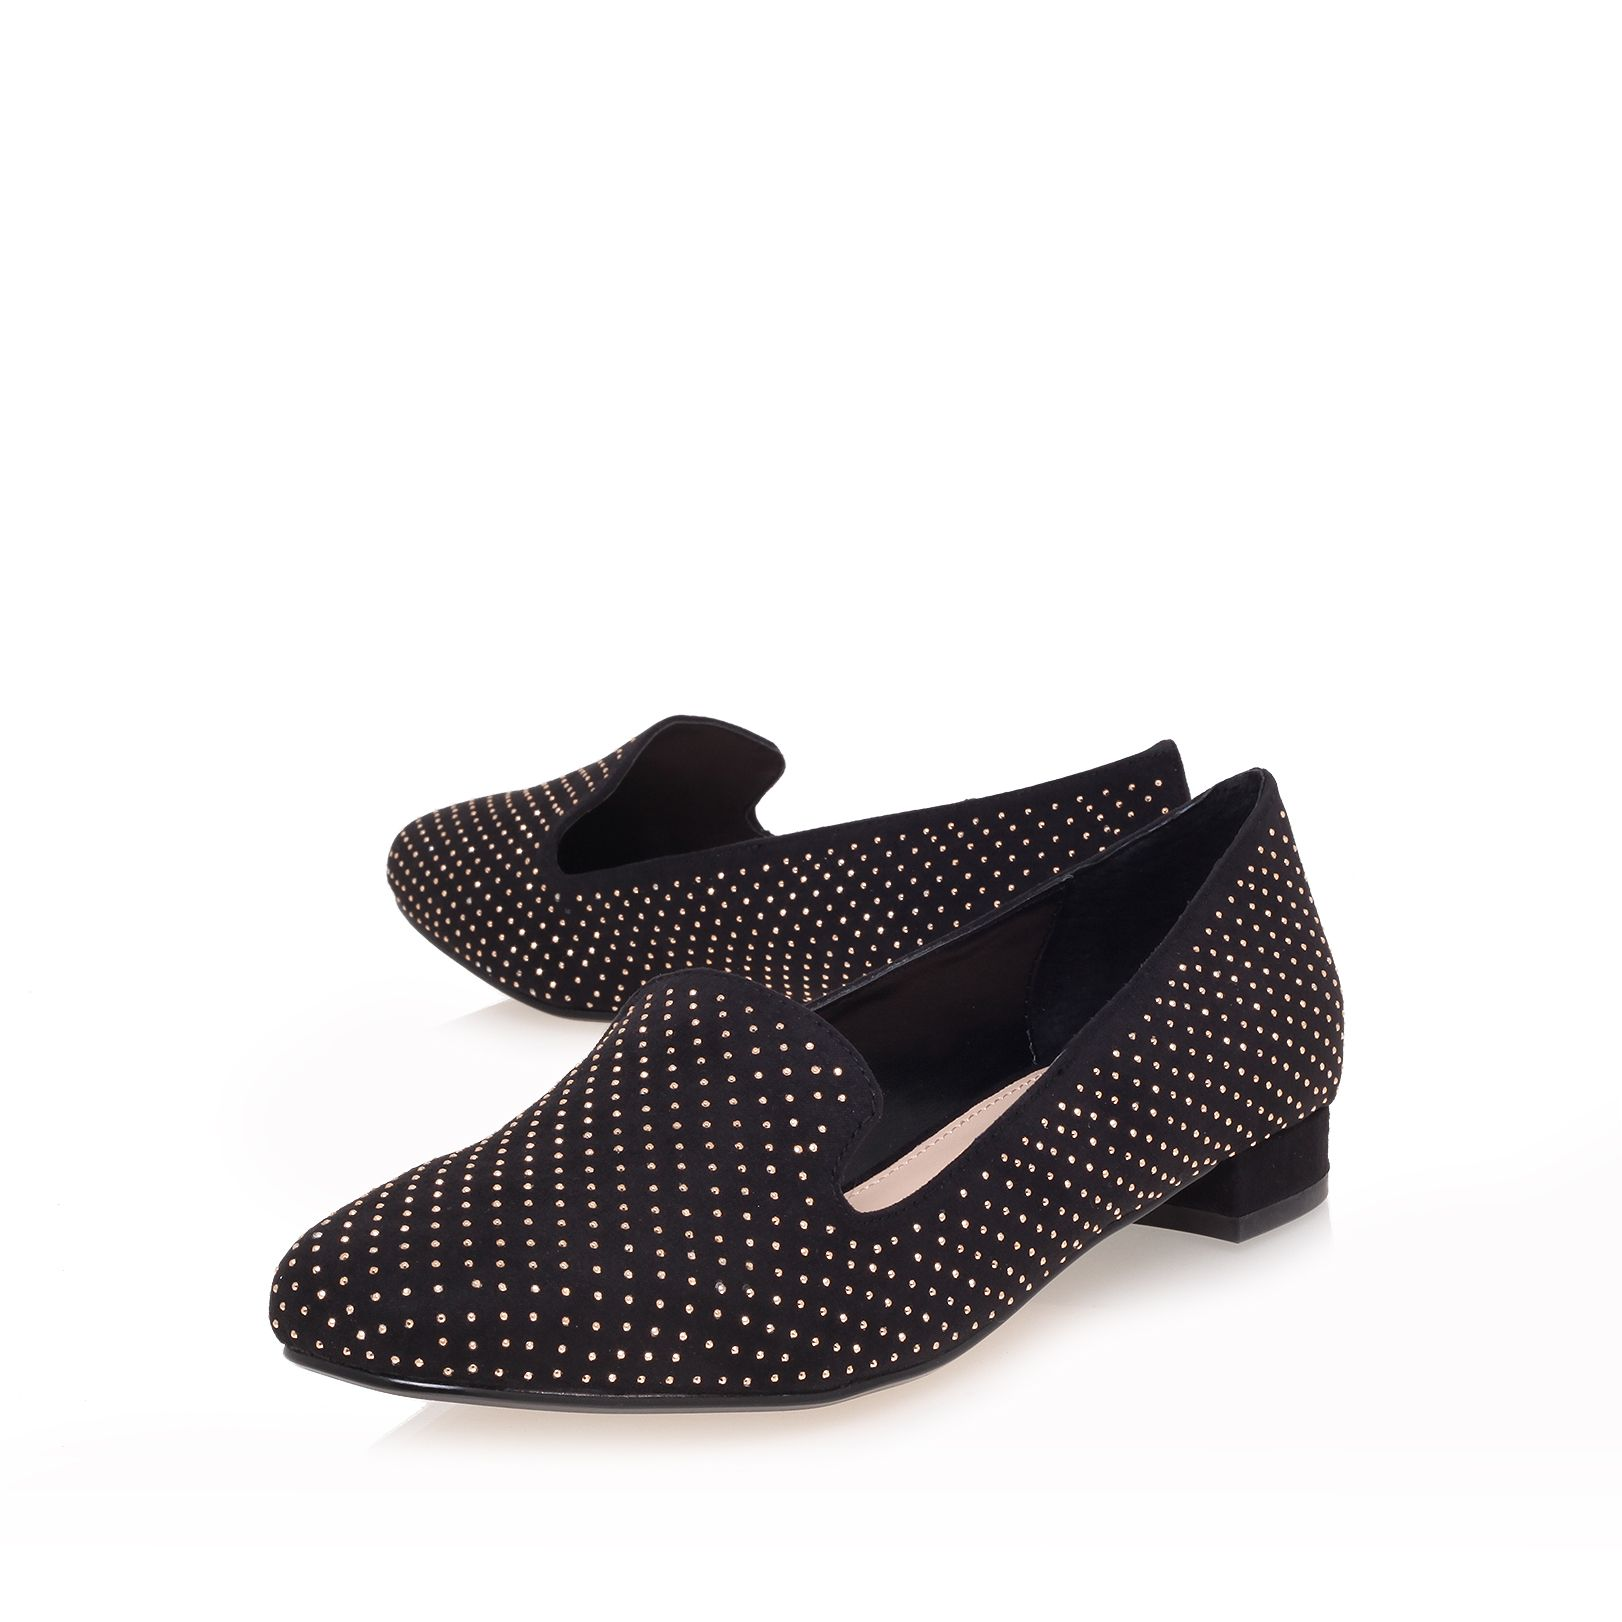 Linseed flat slipper shoes